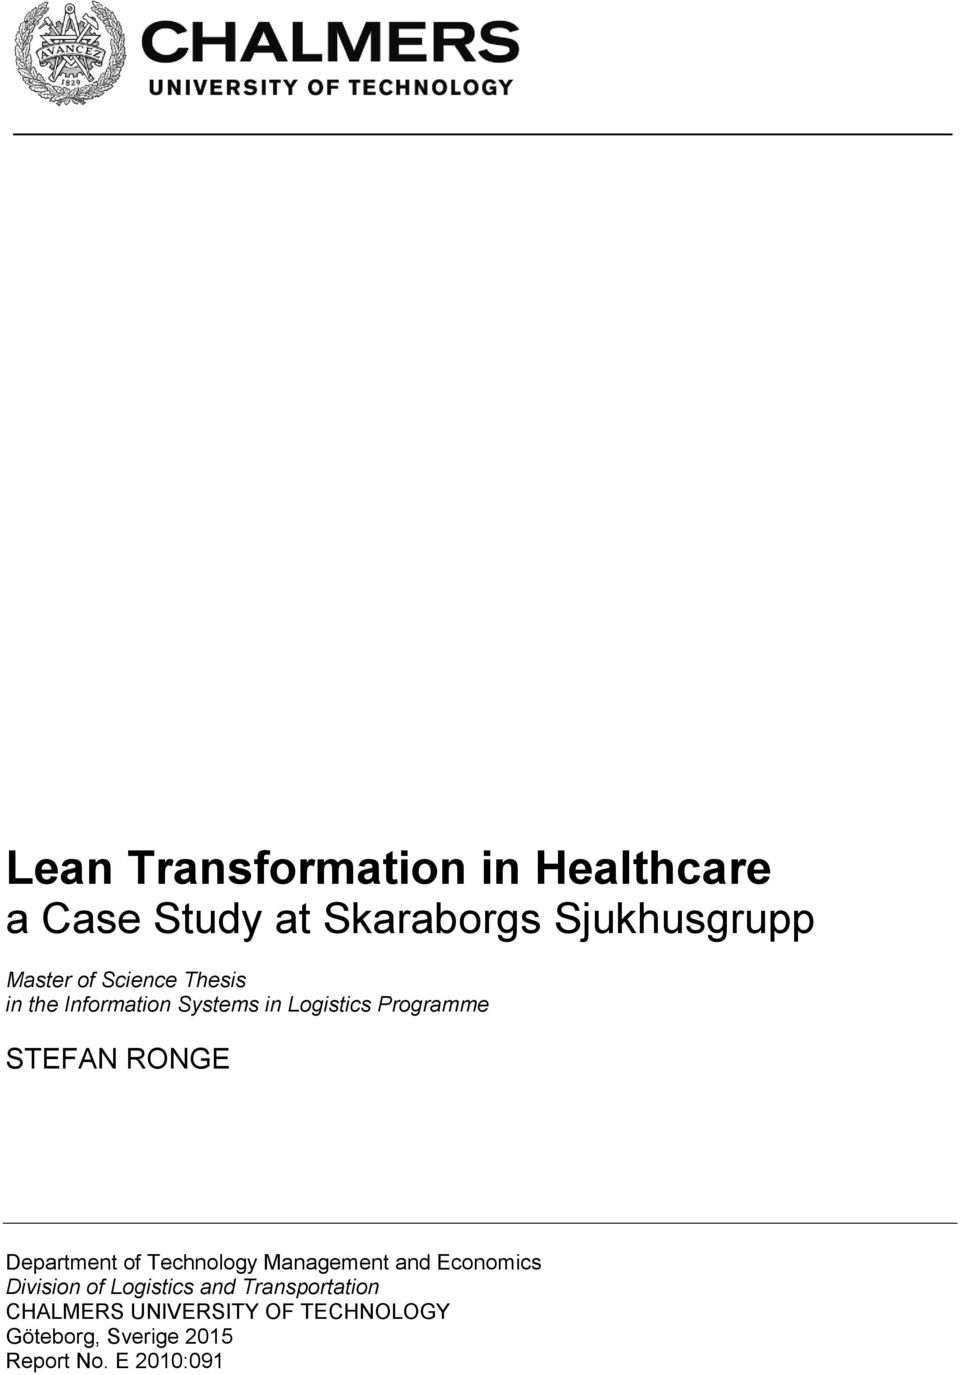 lean logistics management in healthcare a case study